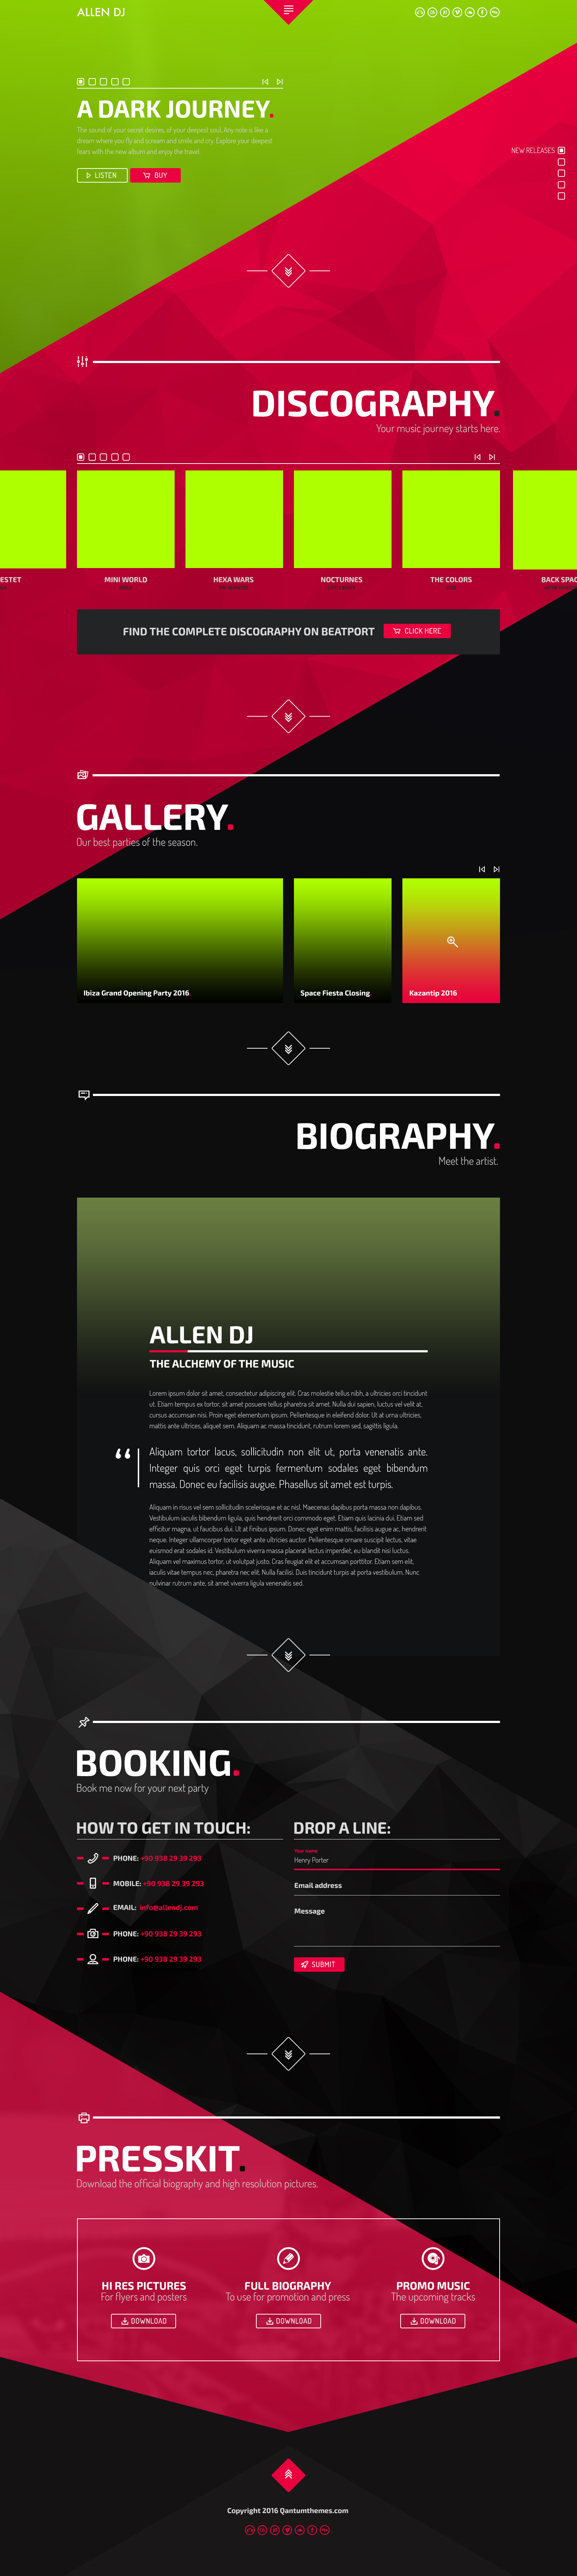 allen one page professional psd website template dj producer and musicians by qantumthemes. Black Bedroom Furniture Sets. Home Design Ideas